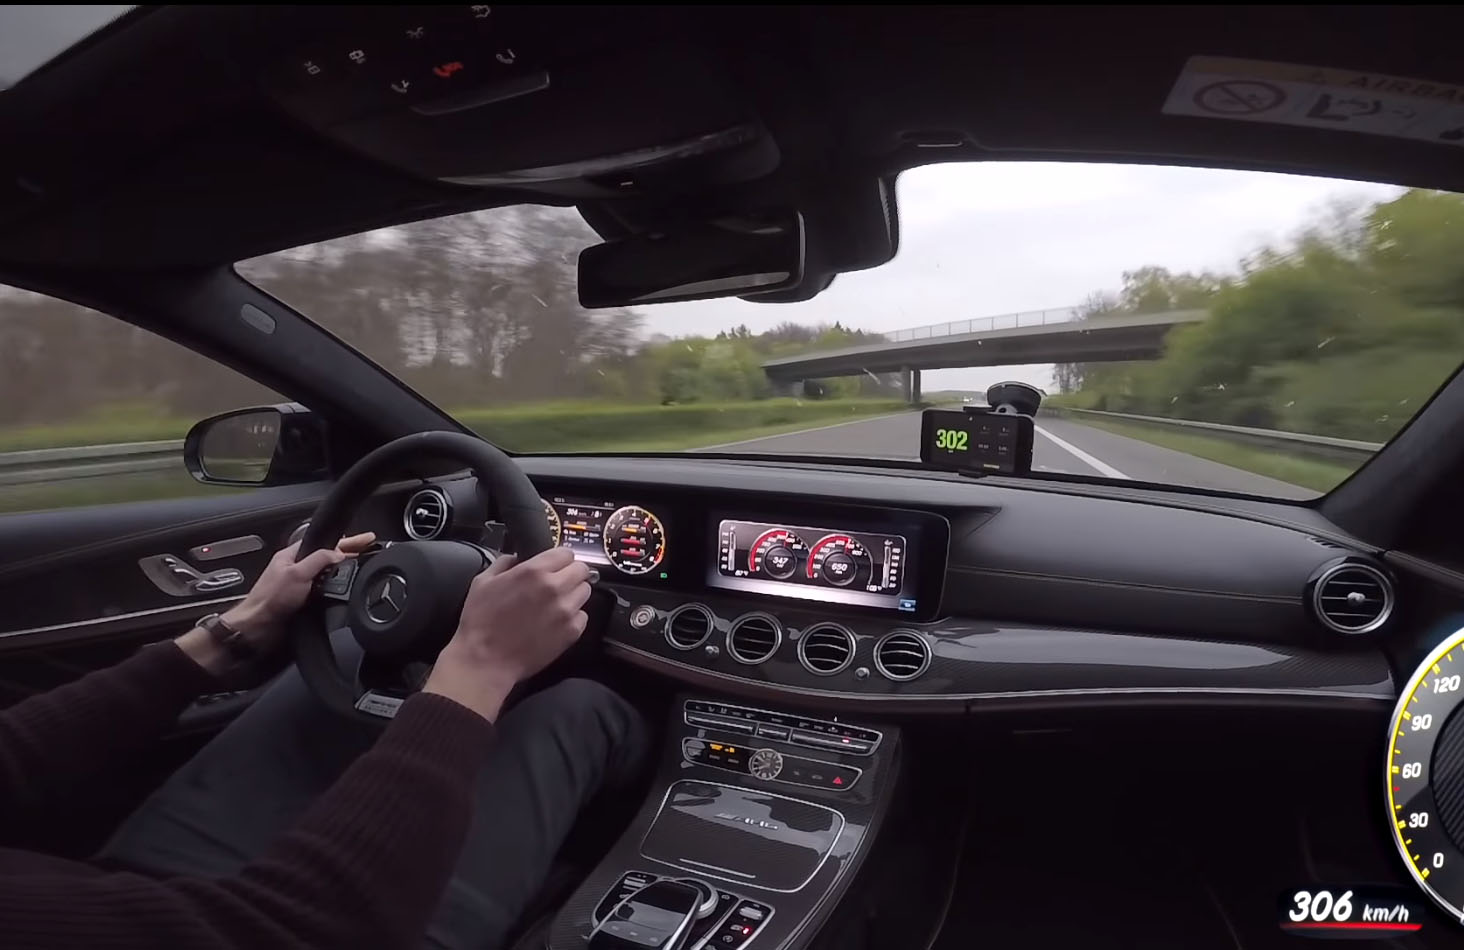 mercedes amg e63 s doing 190 mph 307 km h is what makes the autobahn great autoevolution mercedes amg e63 s doing 190 mph 307